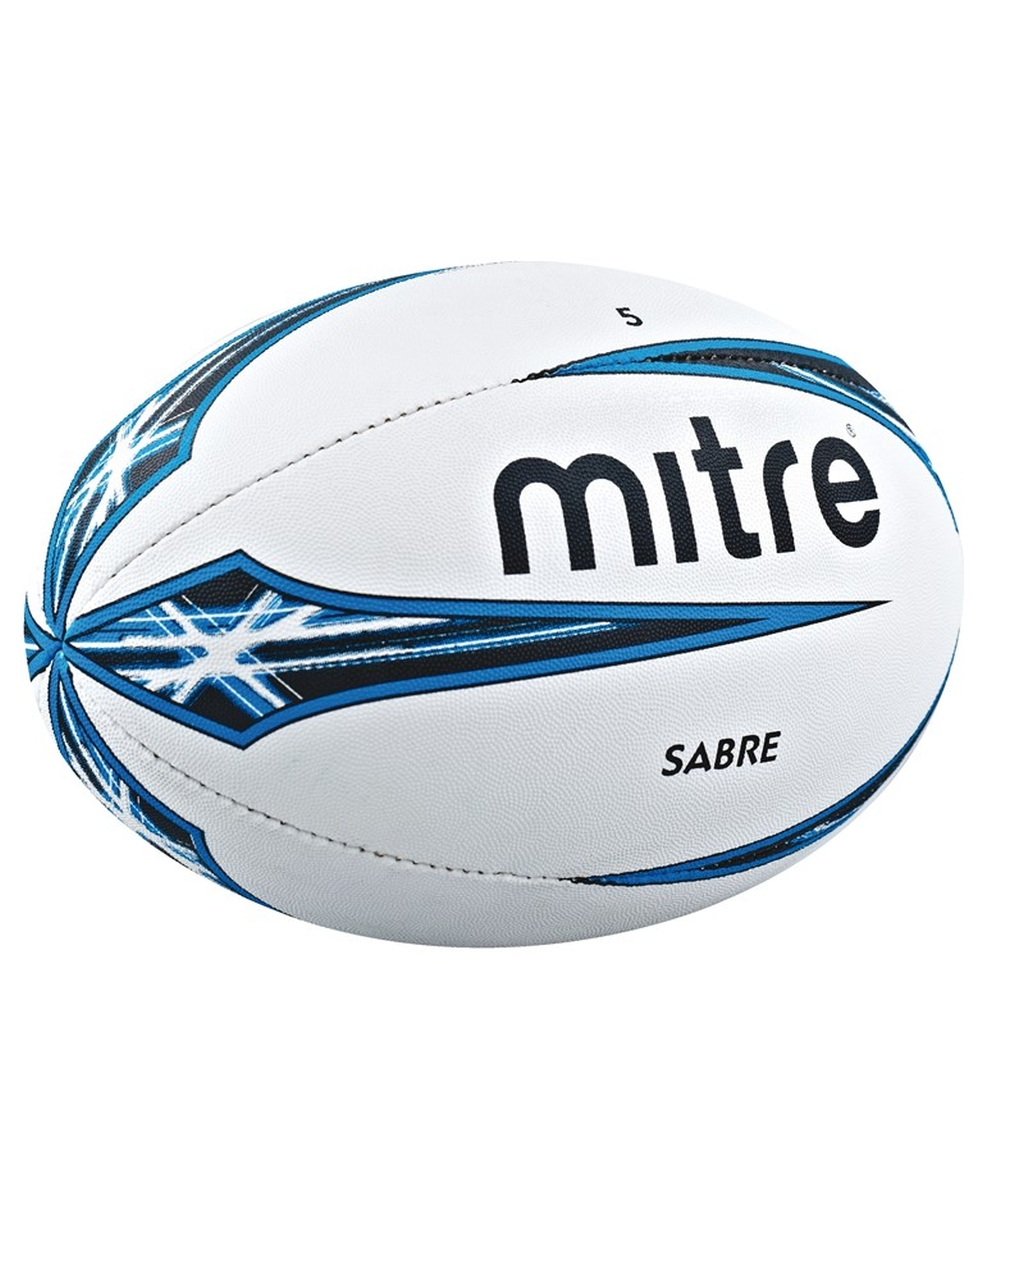 Mitre Sabre Rugby Ball Size 5